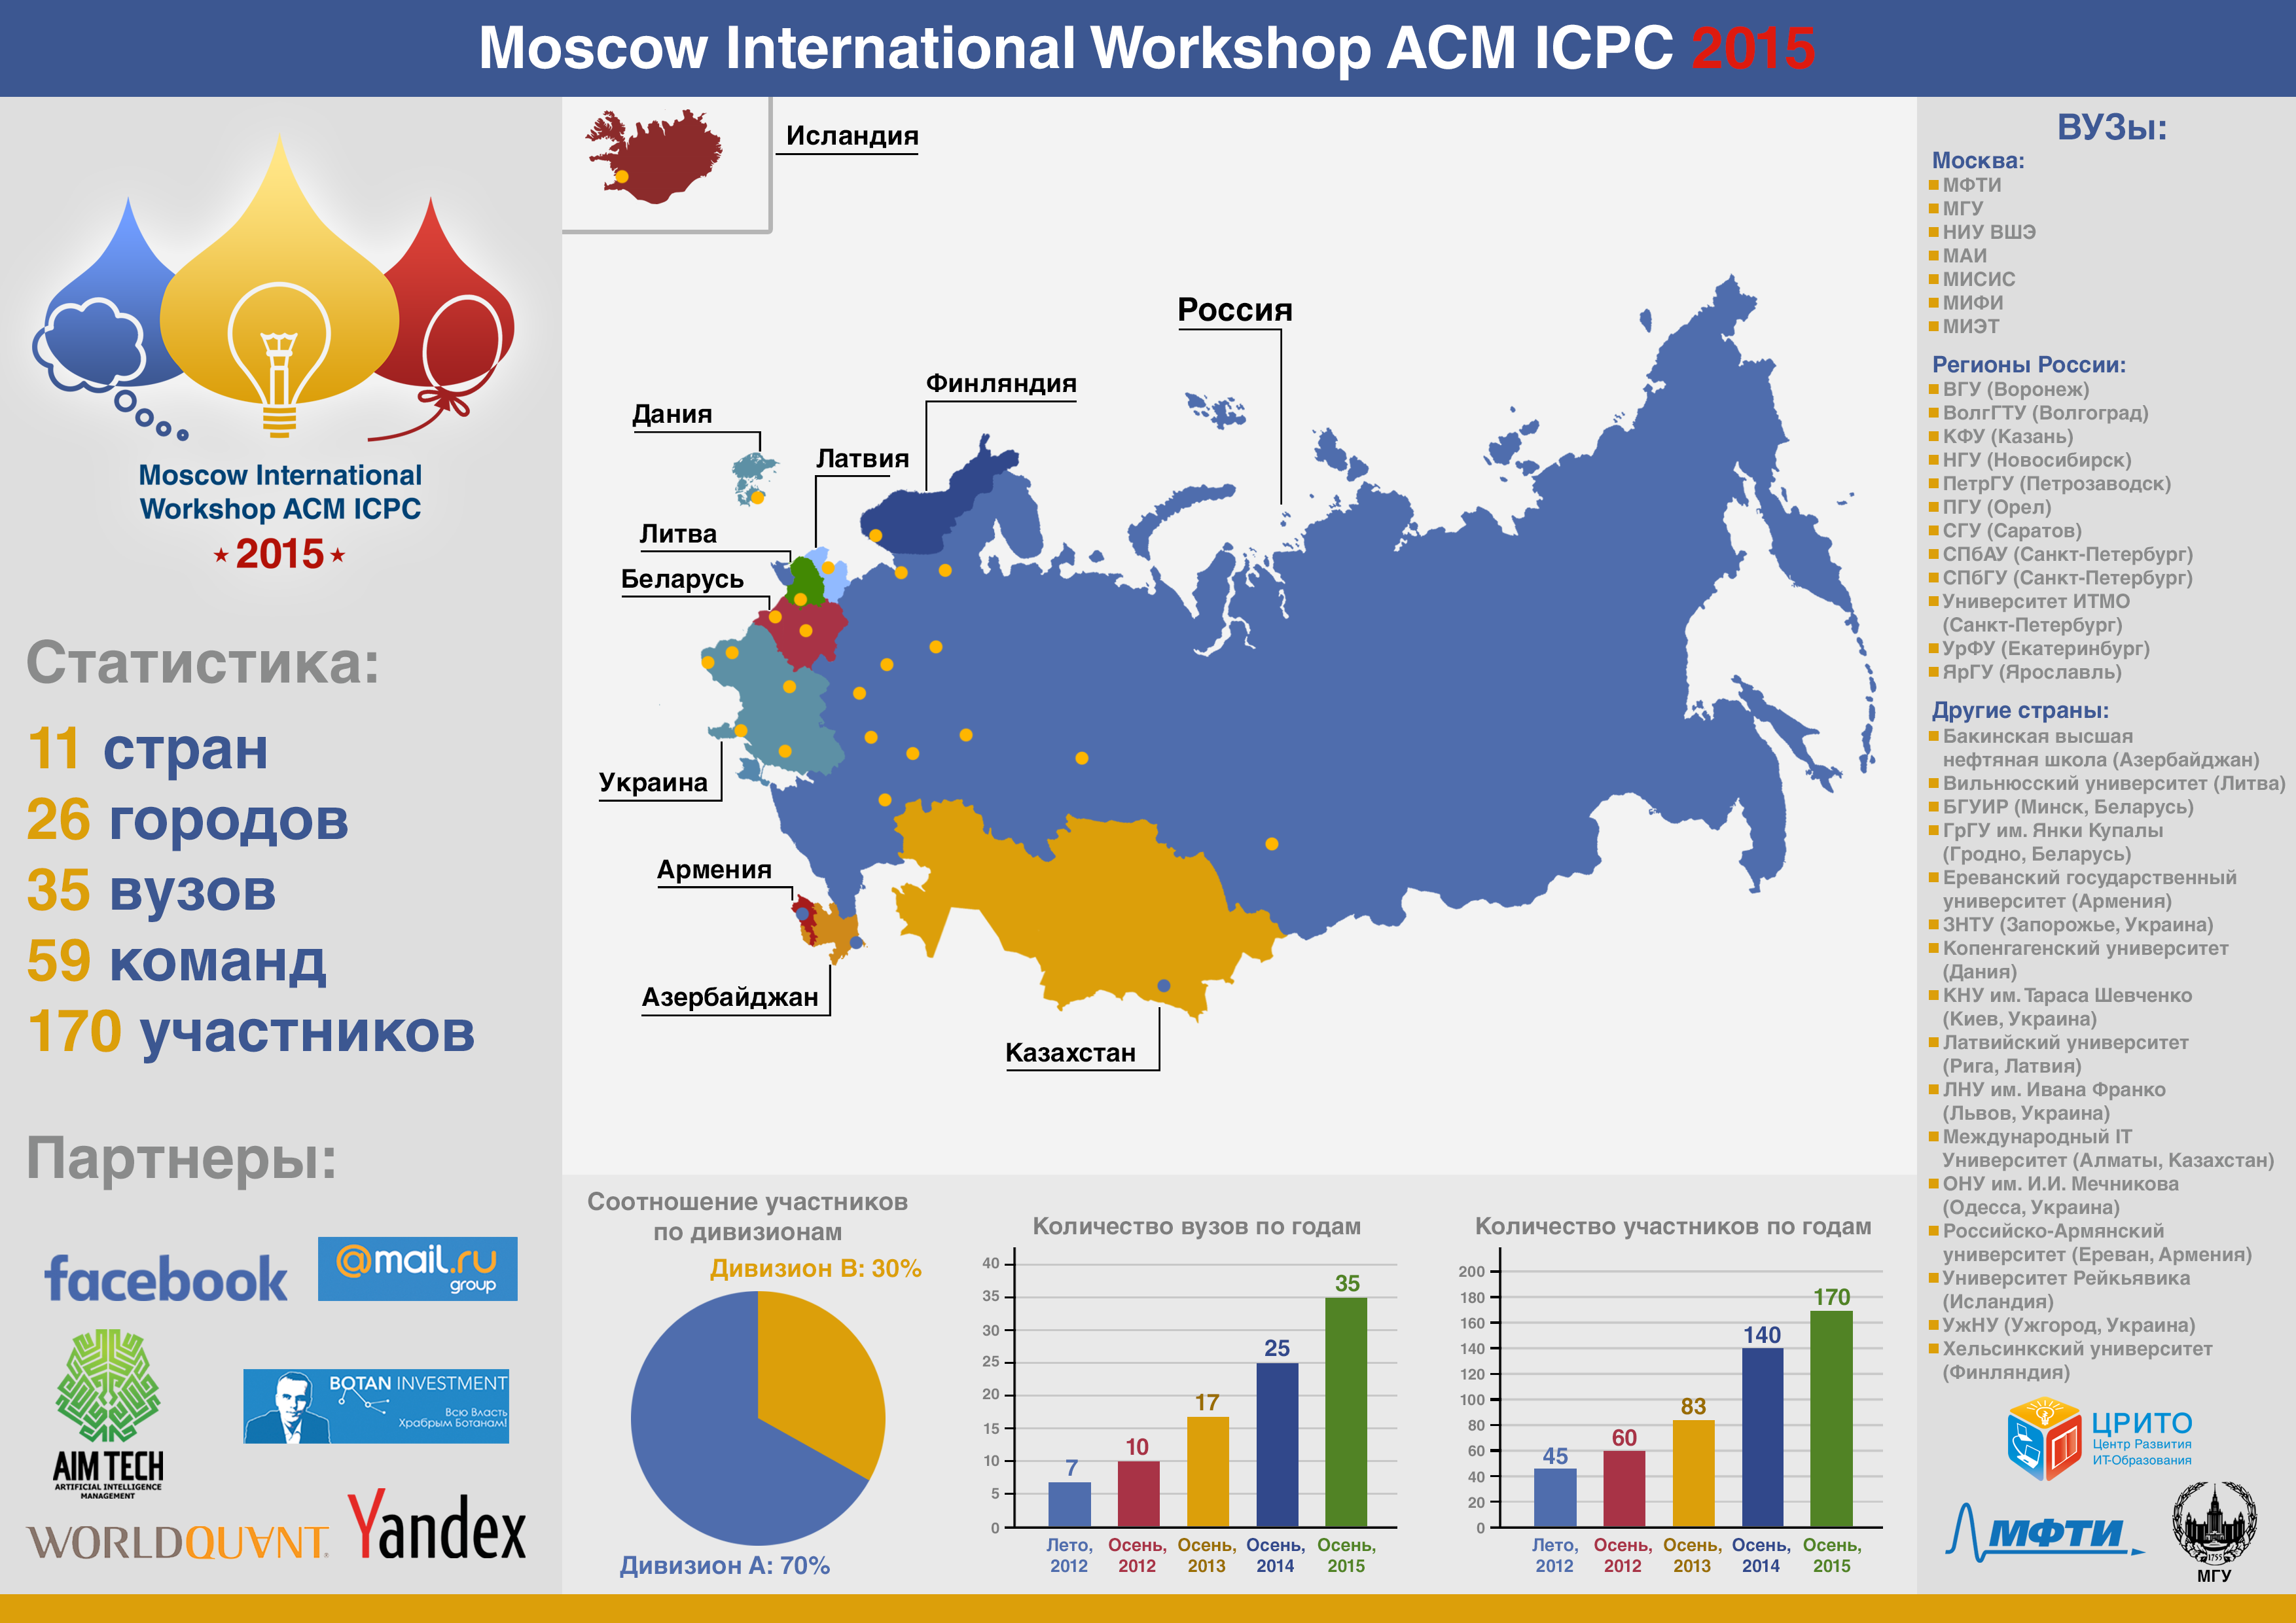 Moscow International Workshop ACM ICPC_2015.png